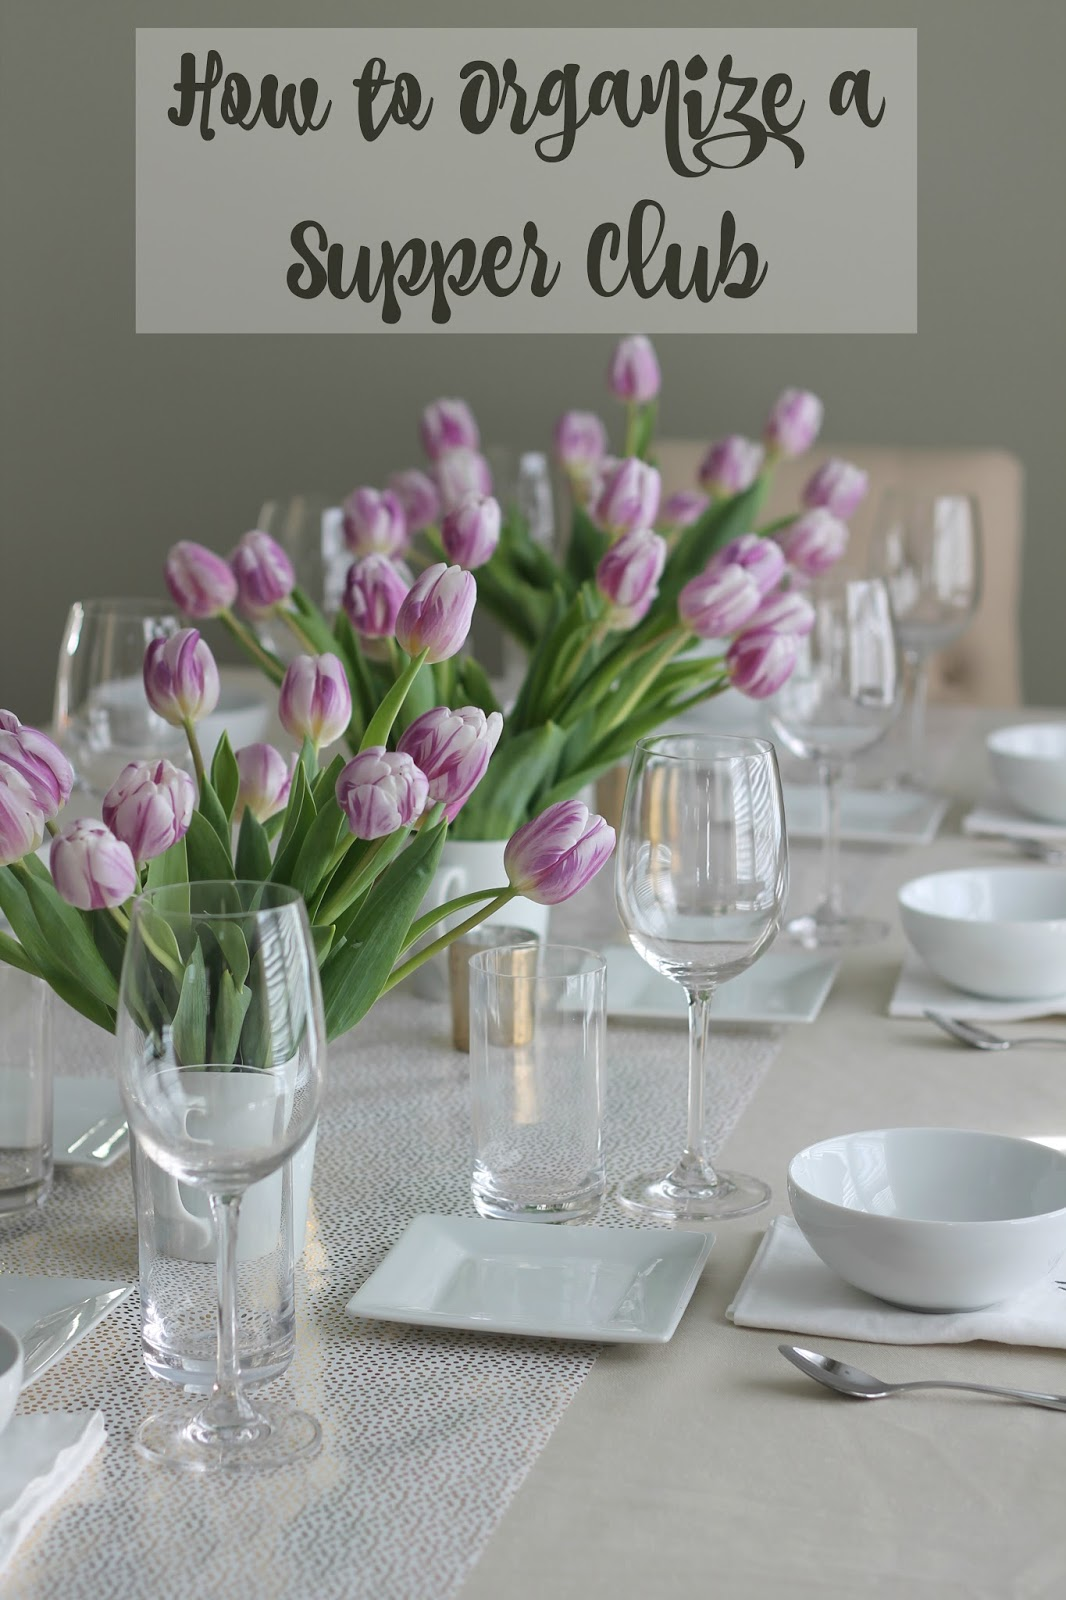 February Supper Club (& How It All Got Started)